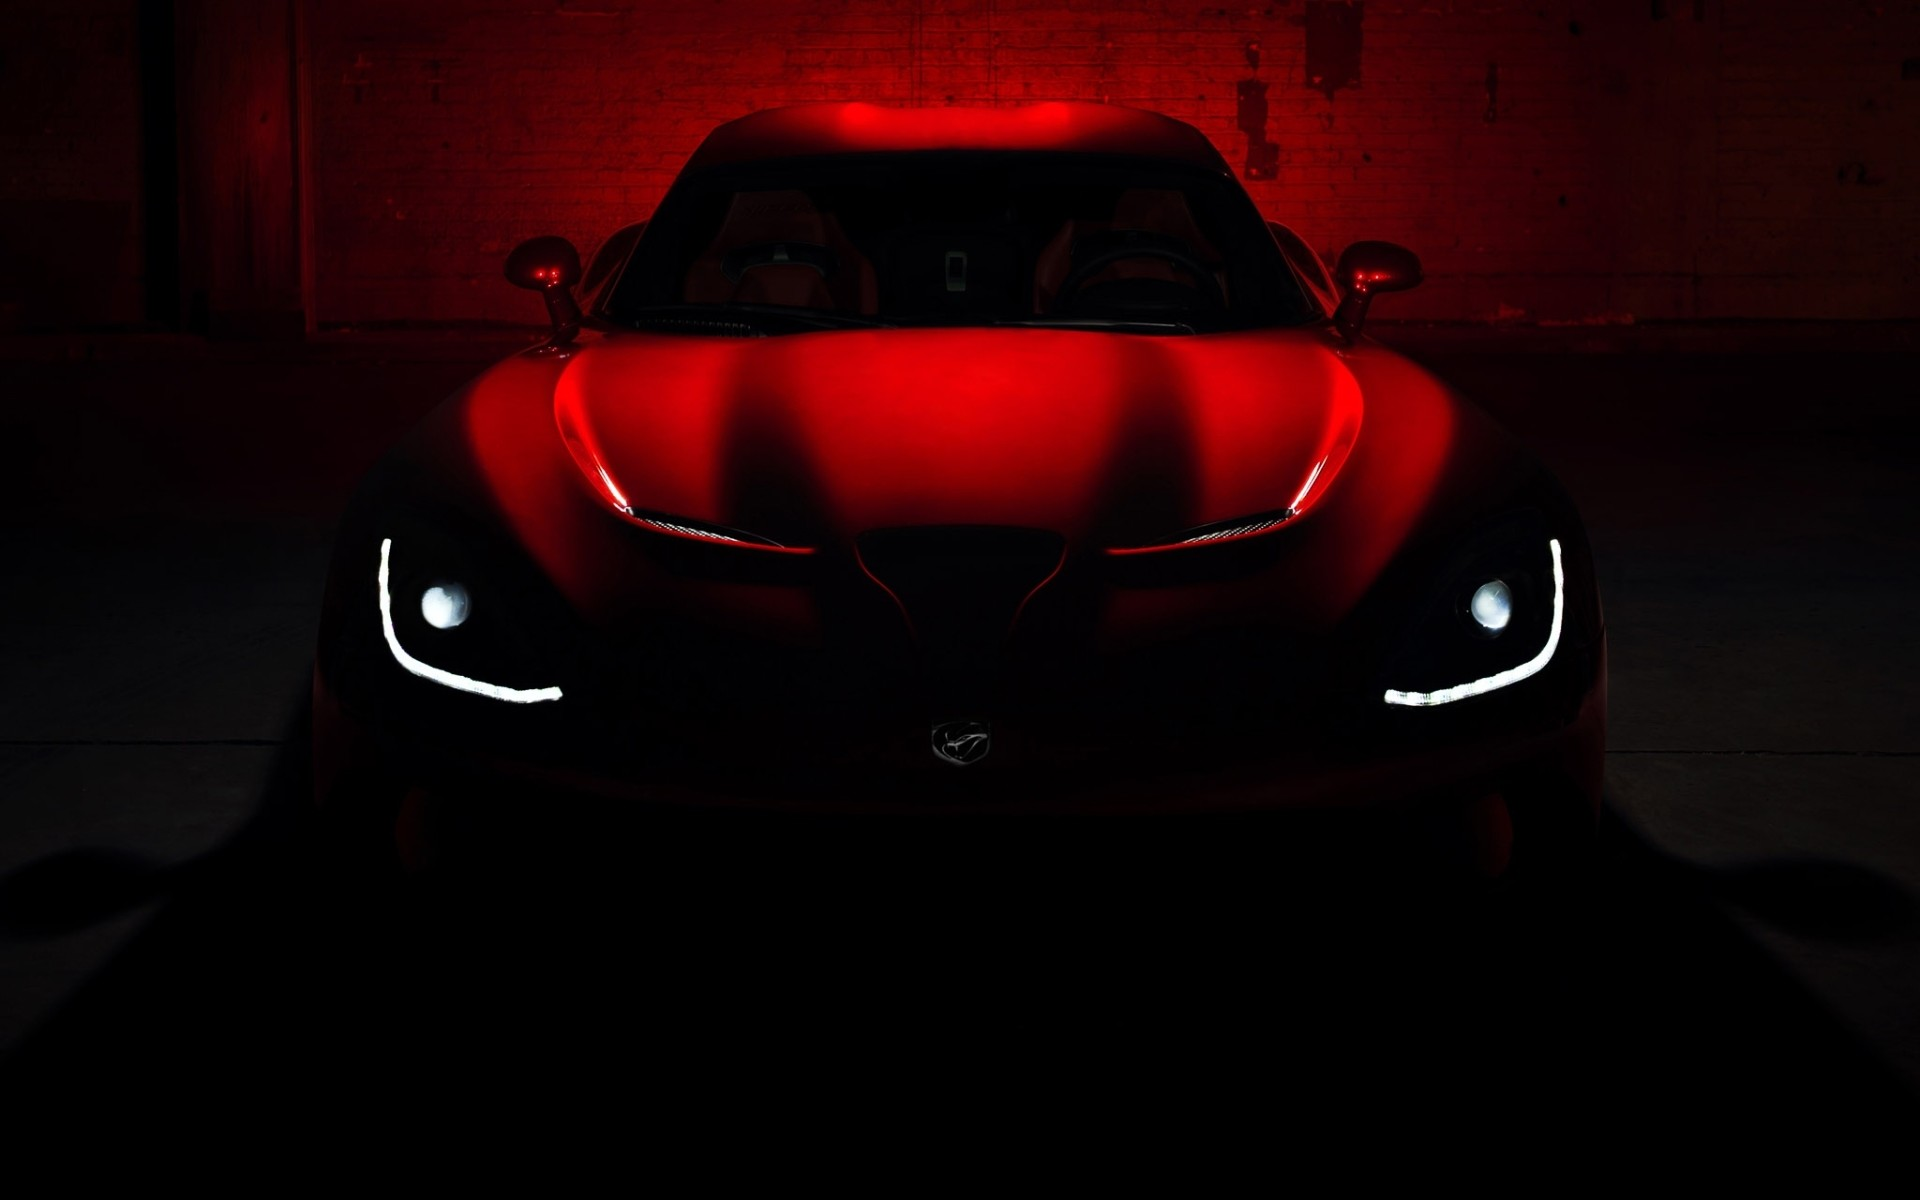 1920x1200 Dodge SRT Viper GTS vehicles cars concept red glow dark lights supercar  wallpaper |  | 26456 | WallpaperUP